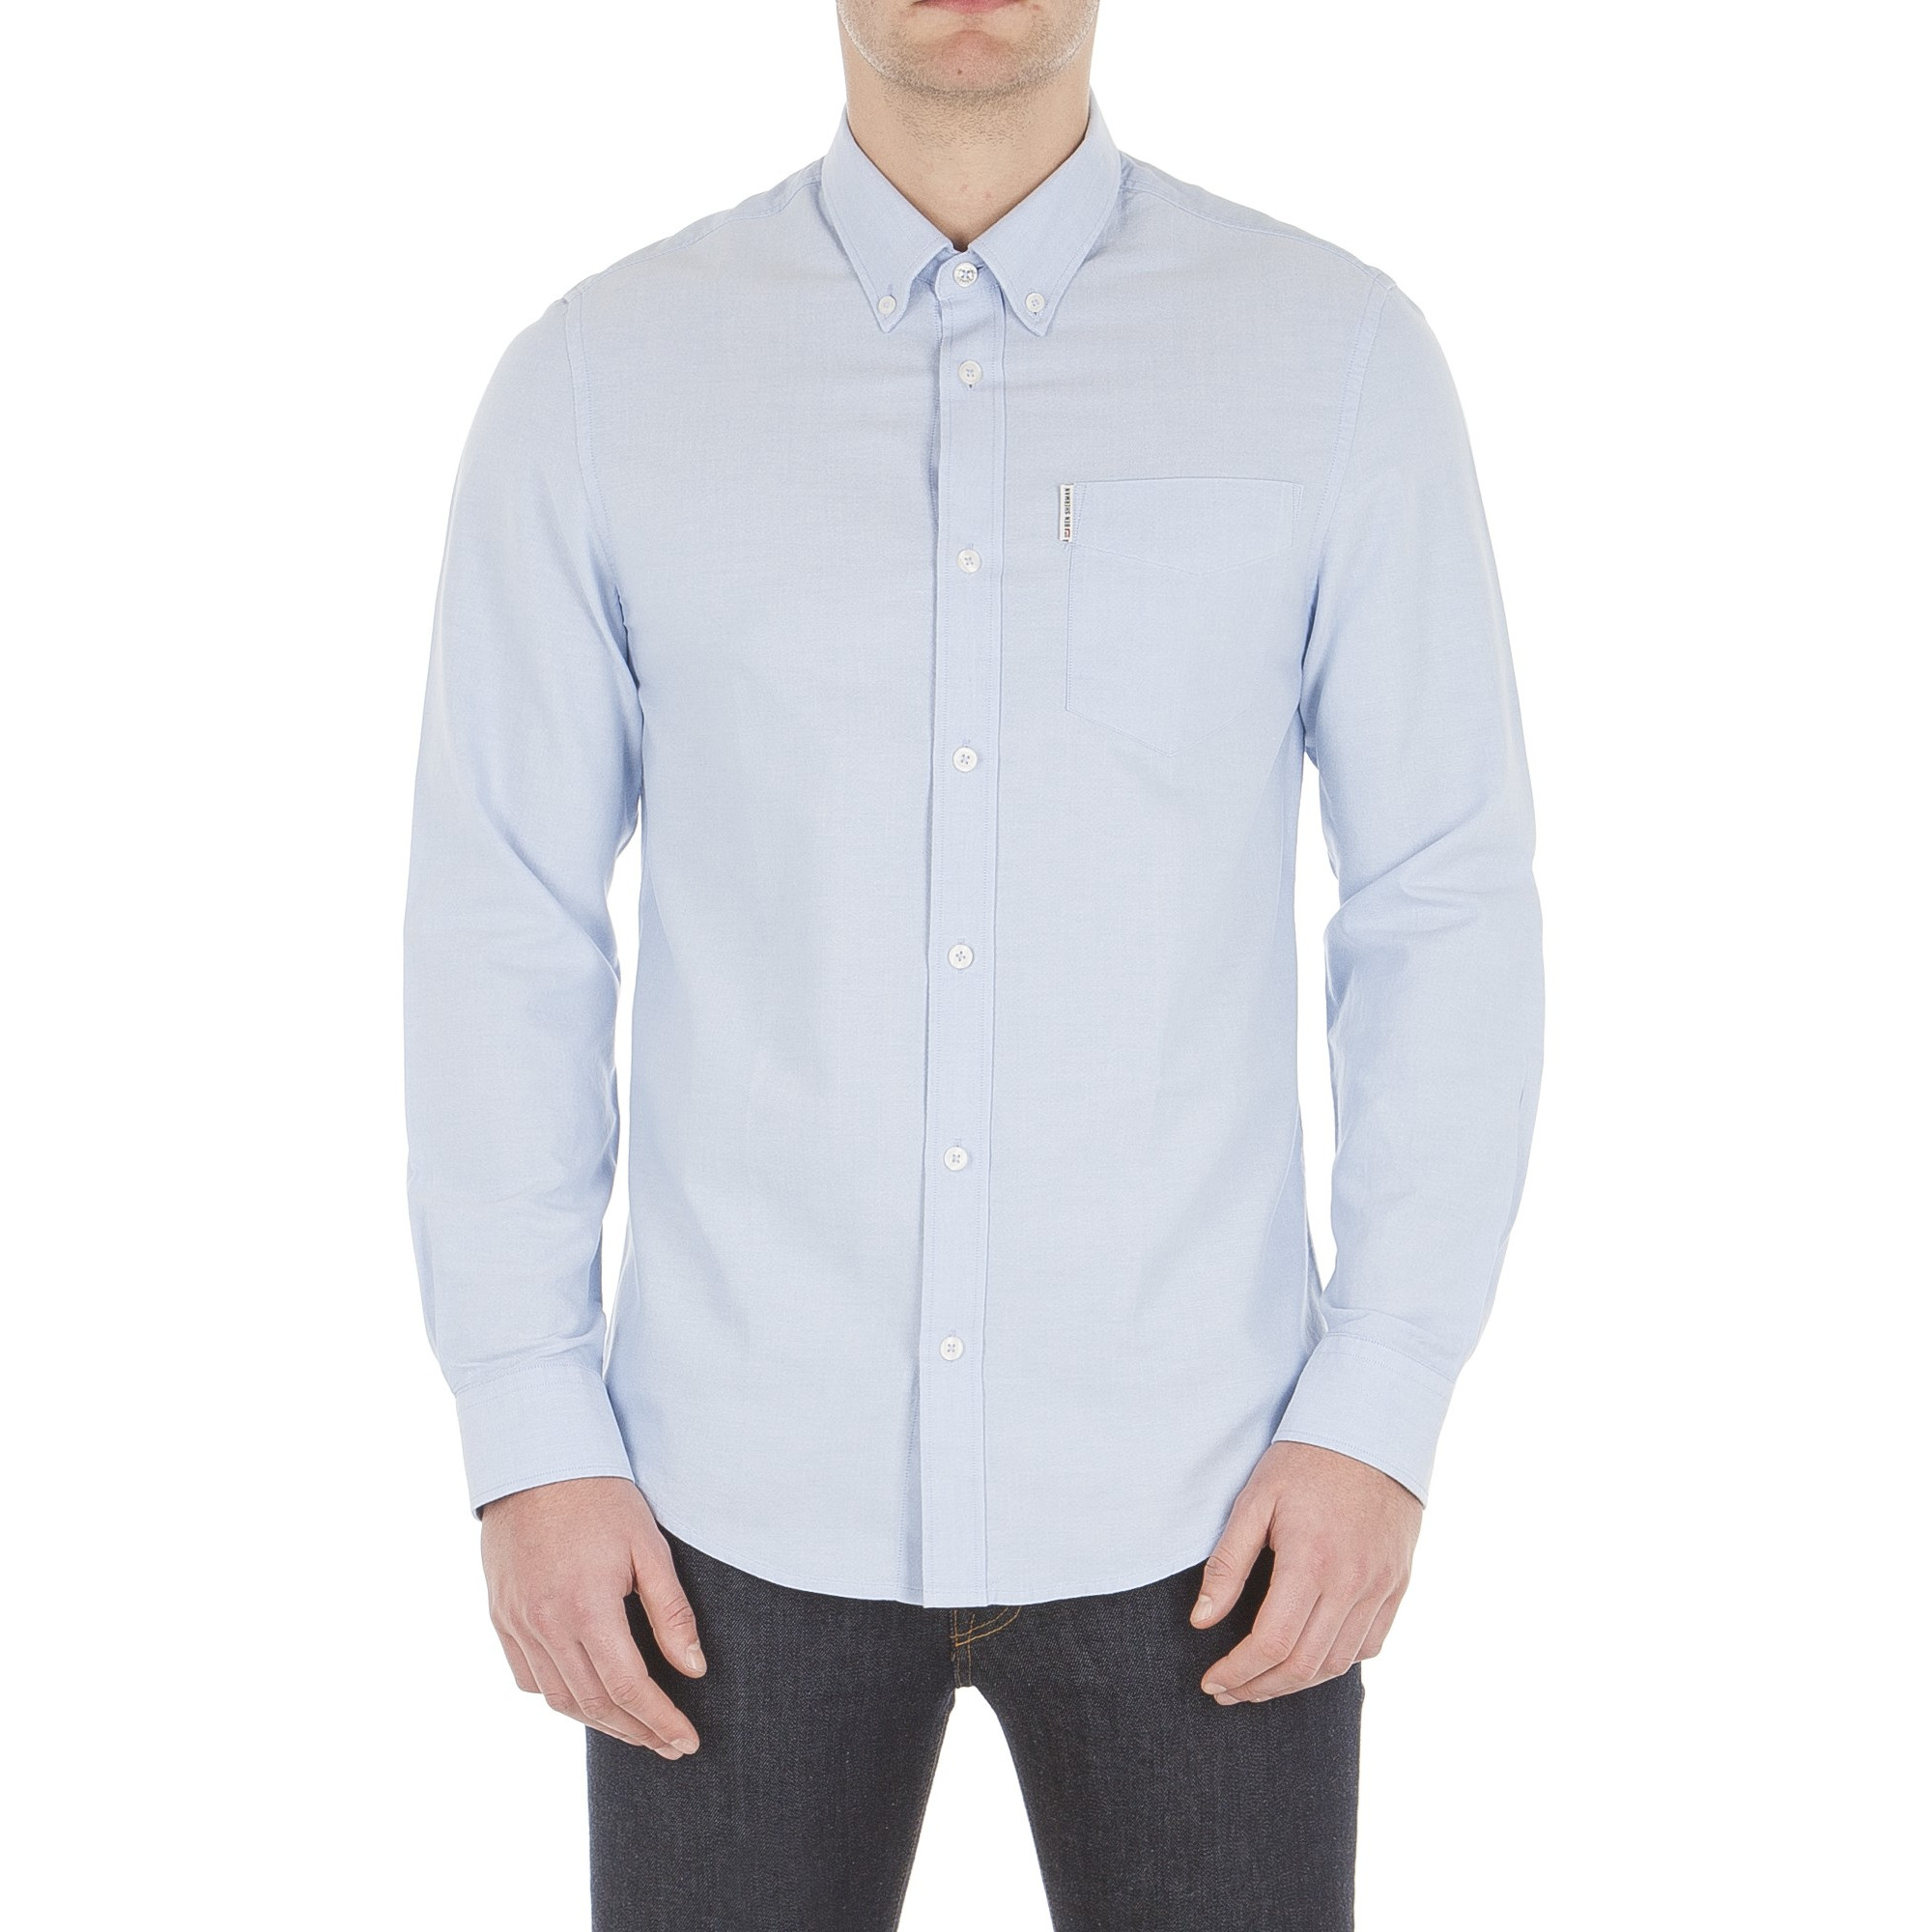 How to Wear an Oxford Shirt Easily one of the best shirts for men, the humble Oxford shirt for men is a time-honoured wardrobe essential that every guy should own. The ultimate shirt for both casual and formal looks, and with such a variety of colours and fabrics, you'll always find the best oxford shirt .